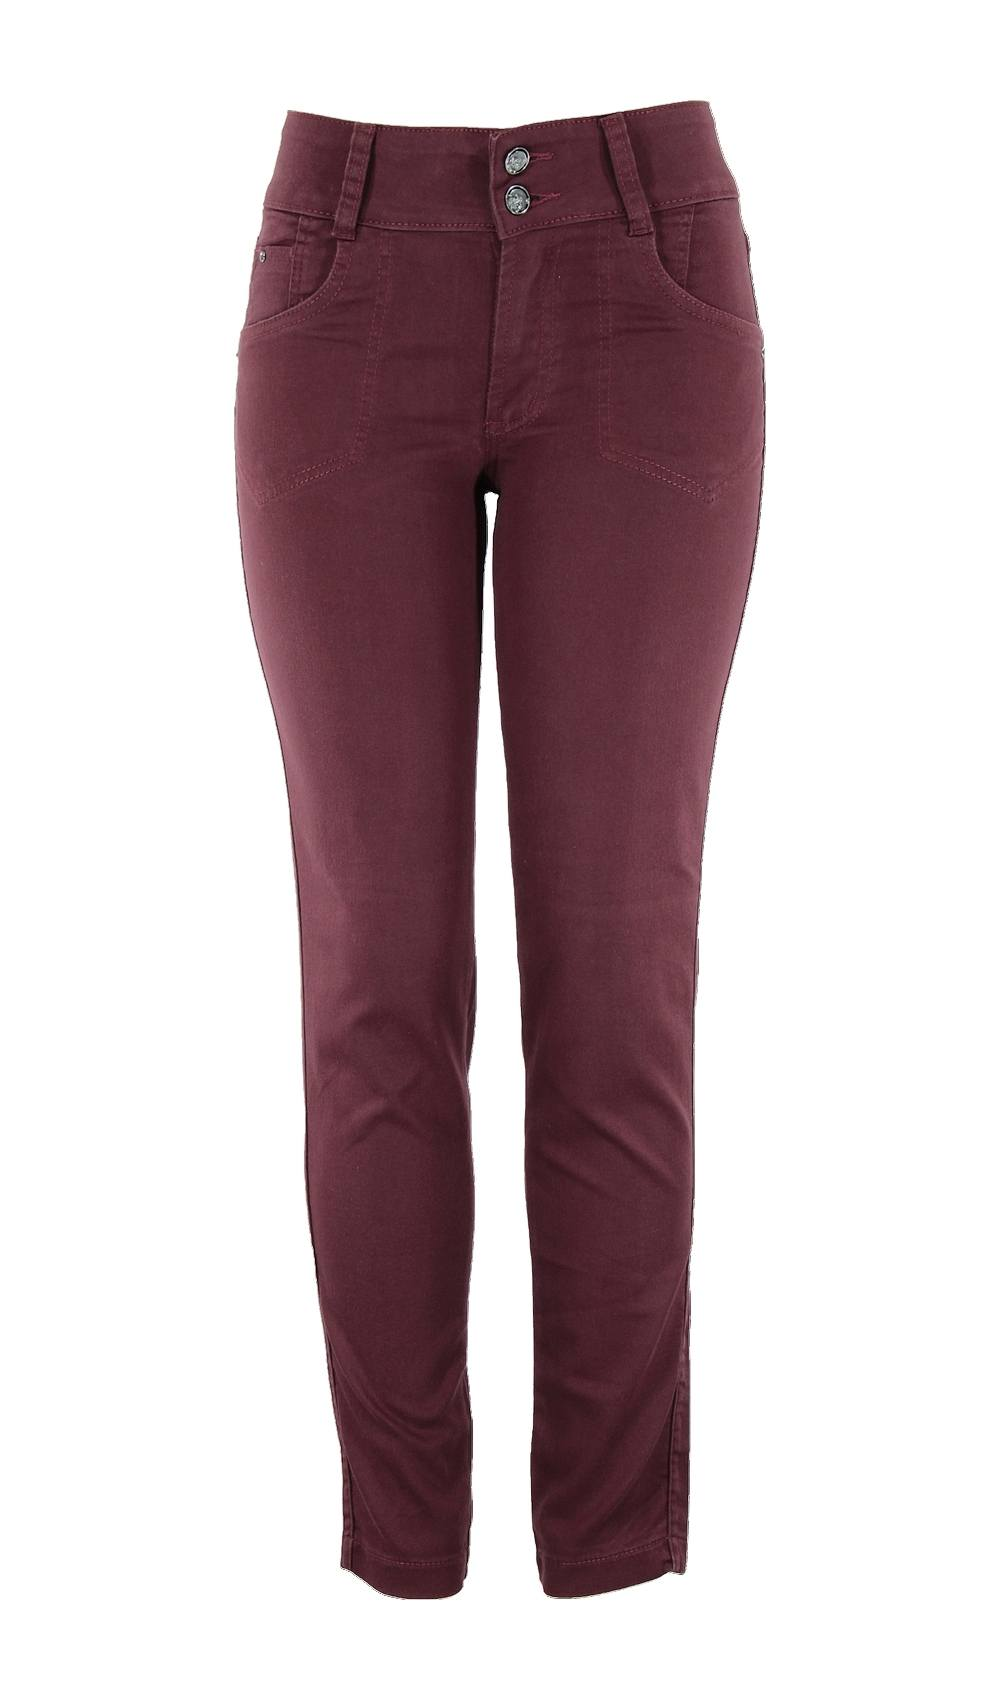 Cigarrete Eruption Jeans Color Julie [52173VIN]